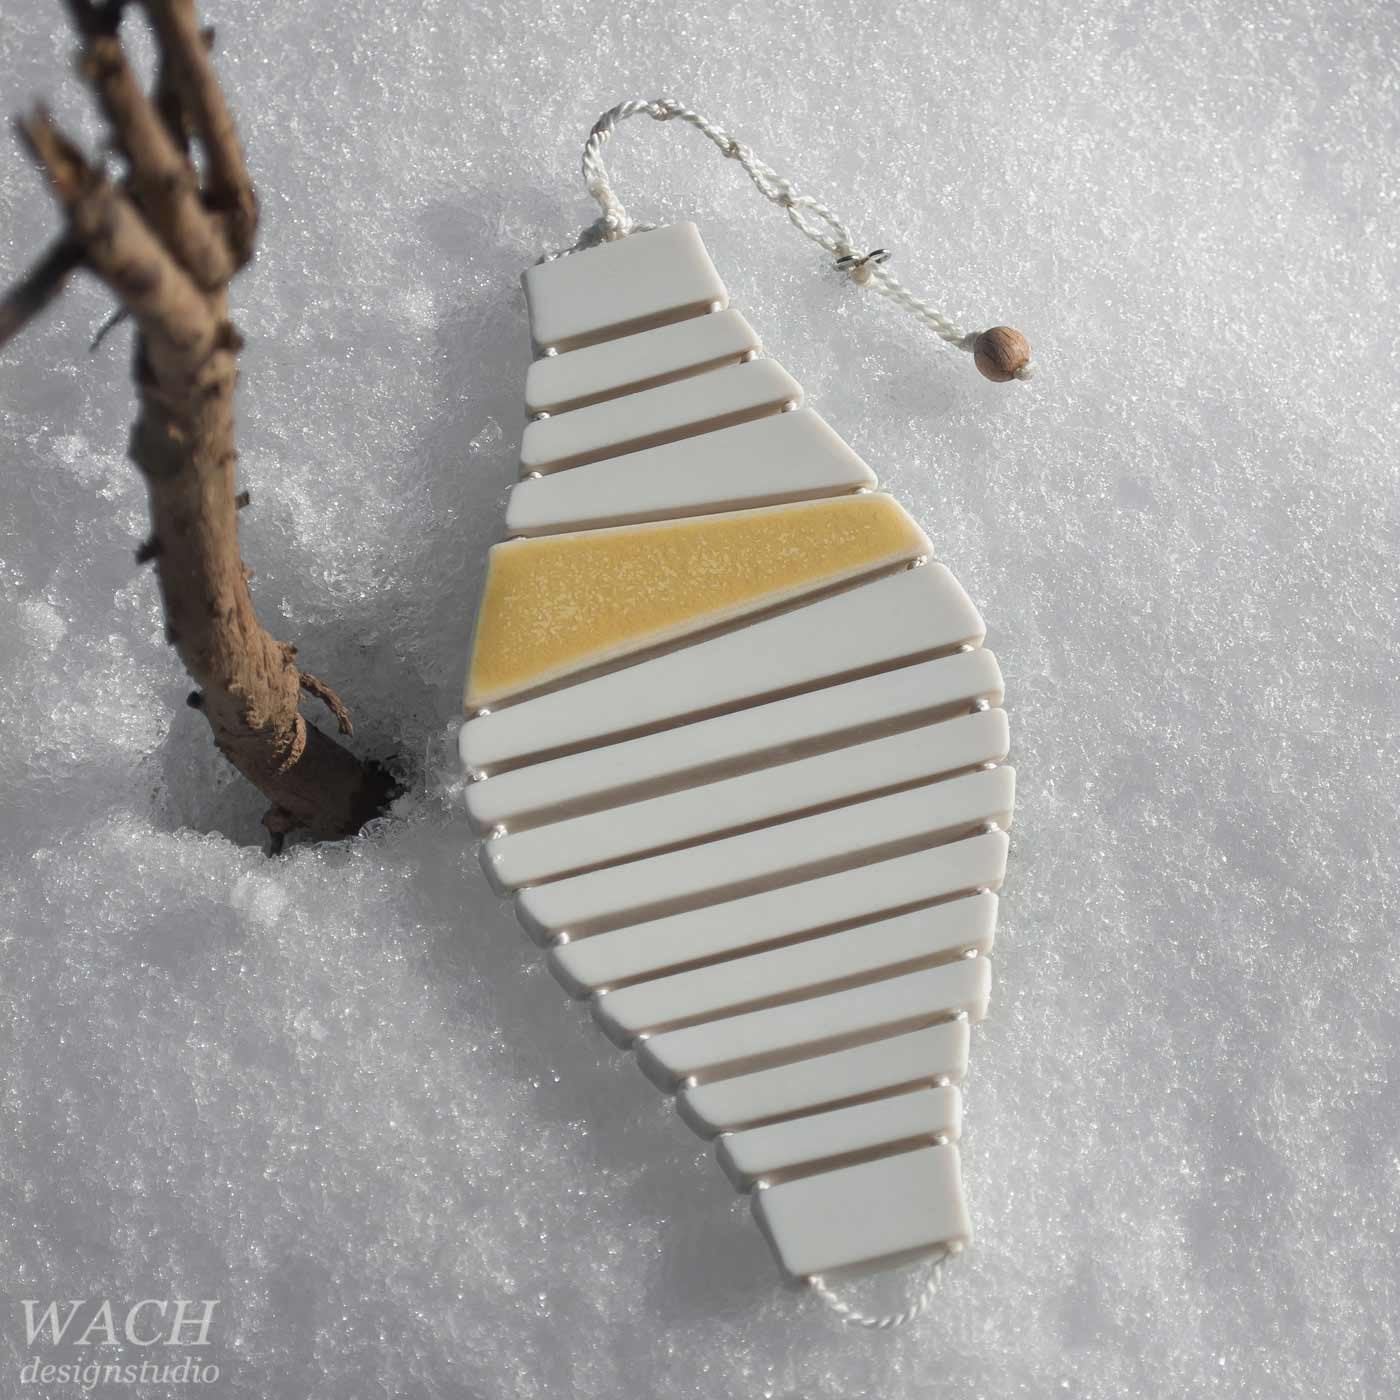 Prototype of a Partner Porcelain bracelet by WACH designstudio